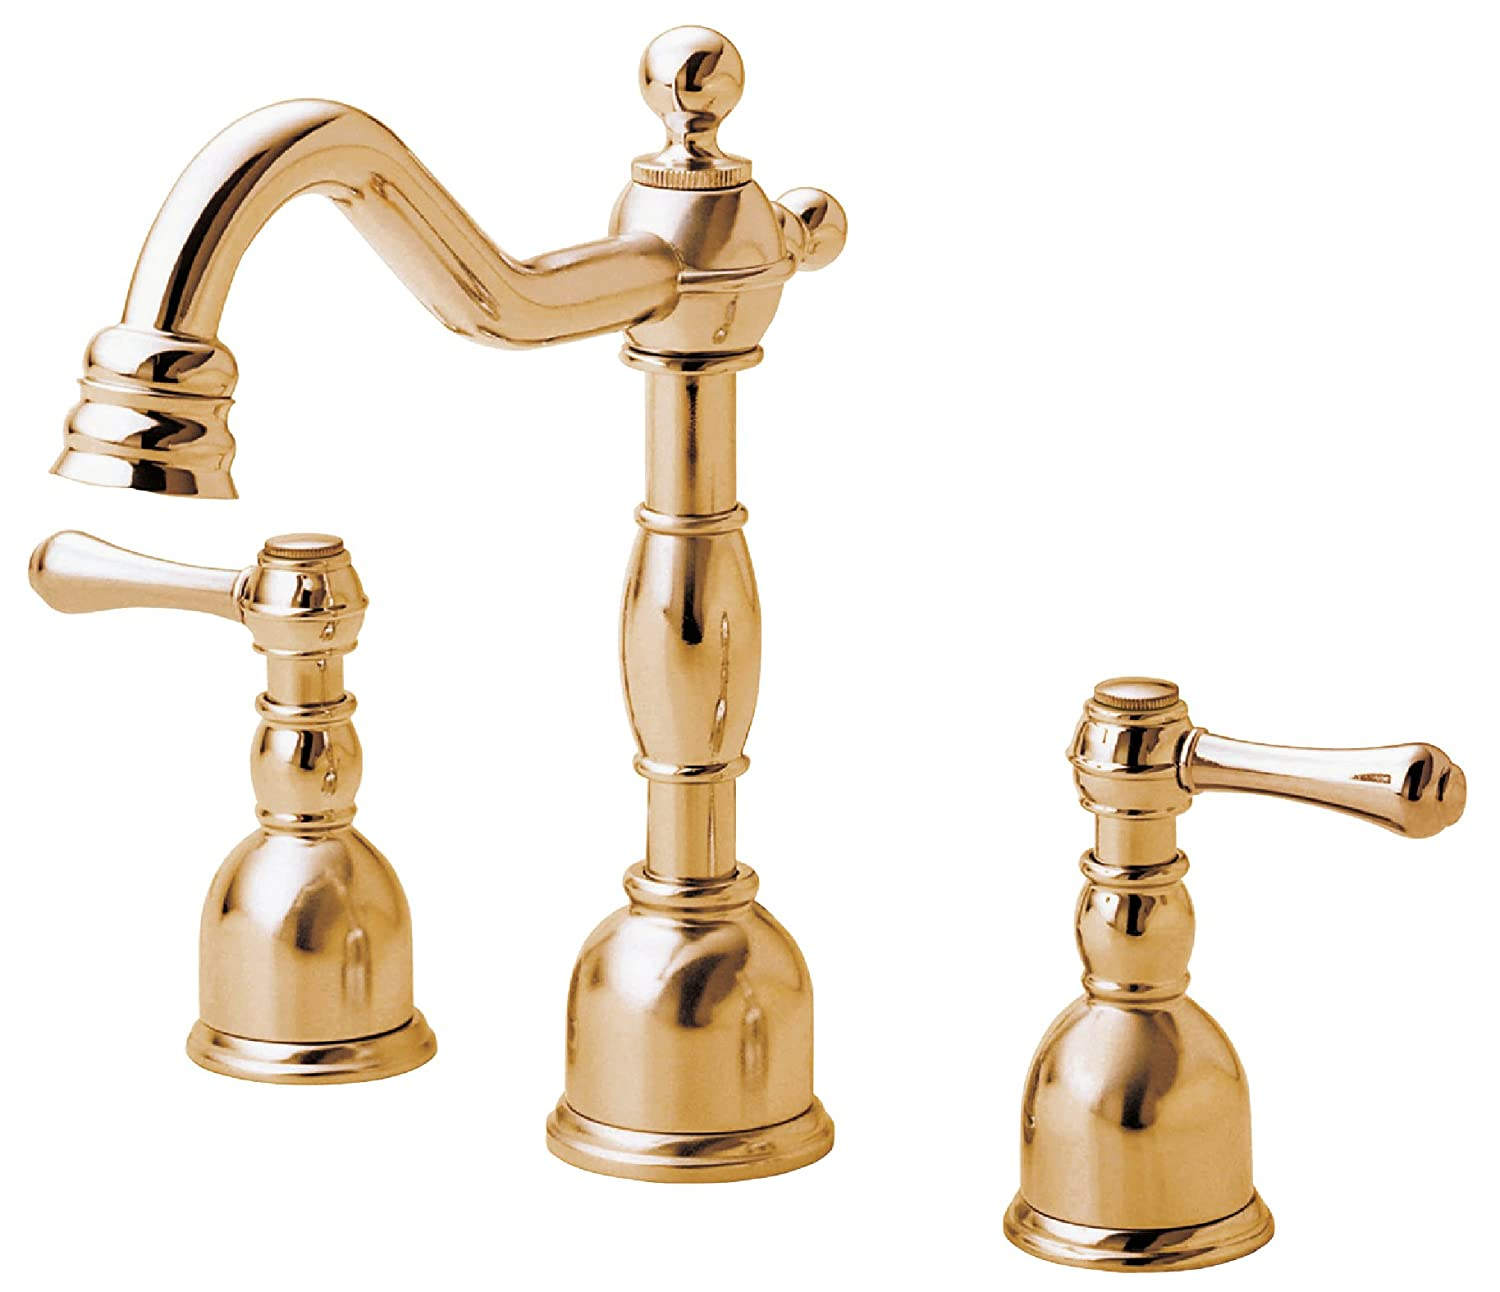 Danze D303057PBV Opulence Two Handle Mini Widespread Lavatory Faucet, Polished  Brass PBV   Touch On Bathroom Sink Faucets   Amazon.com